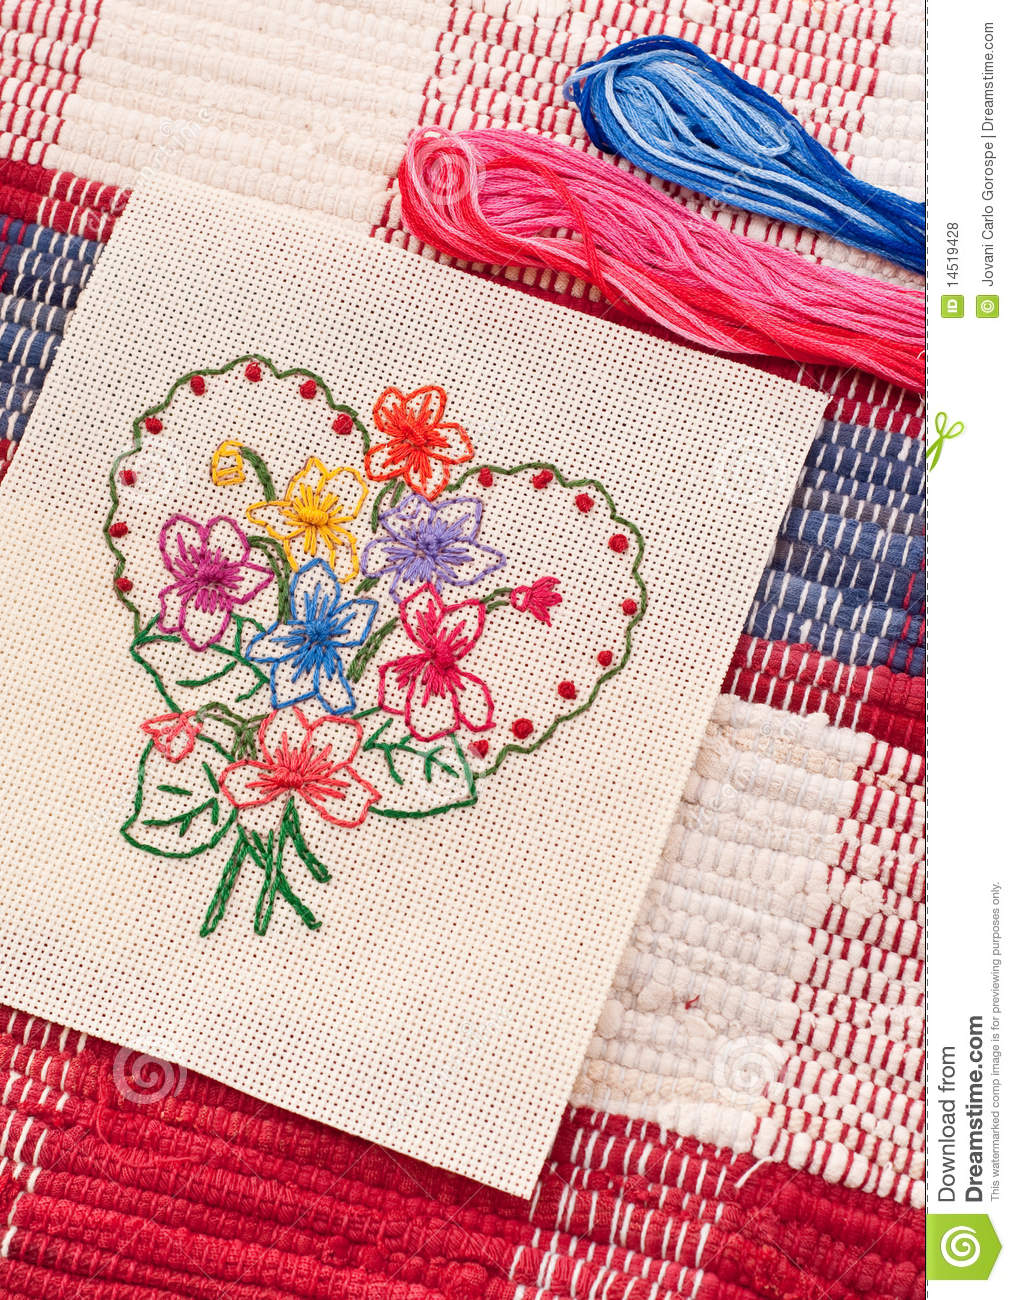 sewing arts and crafts ideas arts and crafts sewing royalty free stock photos 7123